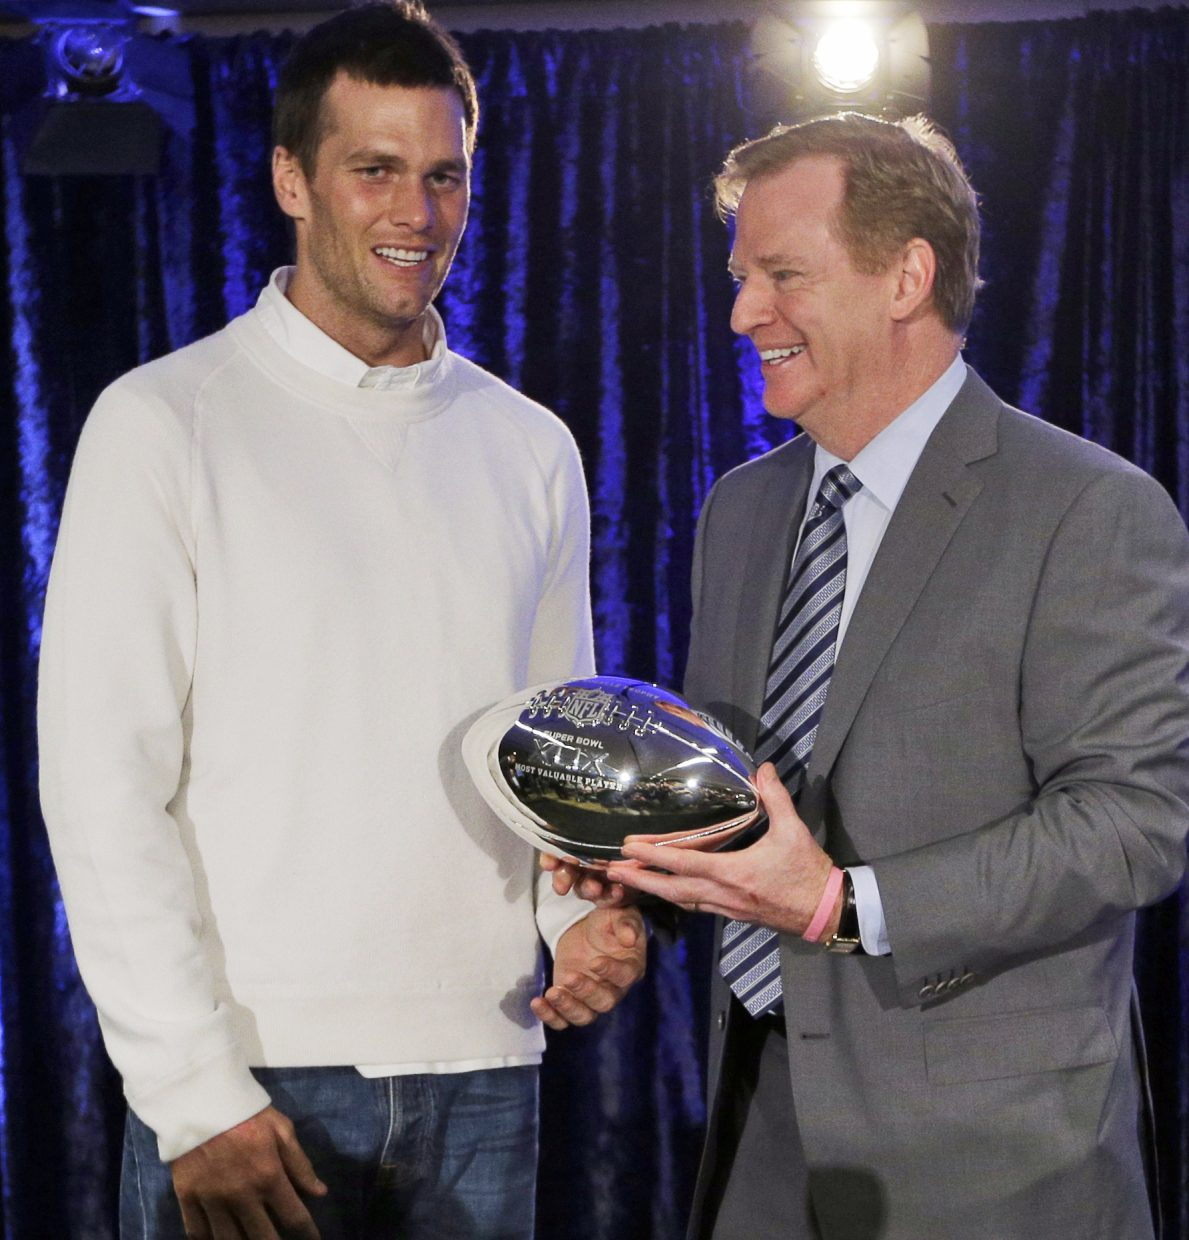 FILE - In this Feb. 2, 2015, file photo, New England Patriots quarterback Tom Brady poses with NFL Commissioner Rodger Goodell during a news conference after NFL football's Super Bowl XLIX in Phoenix, Ariz. Sept. 1 marks 10 years that  Goodell has served as NFL commissioner. (AP Photo/David J. Phillip, File)